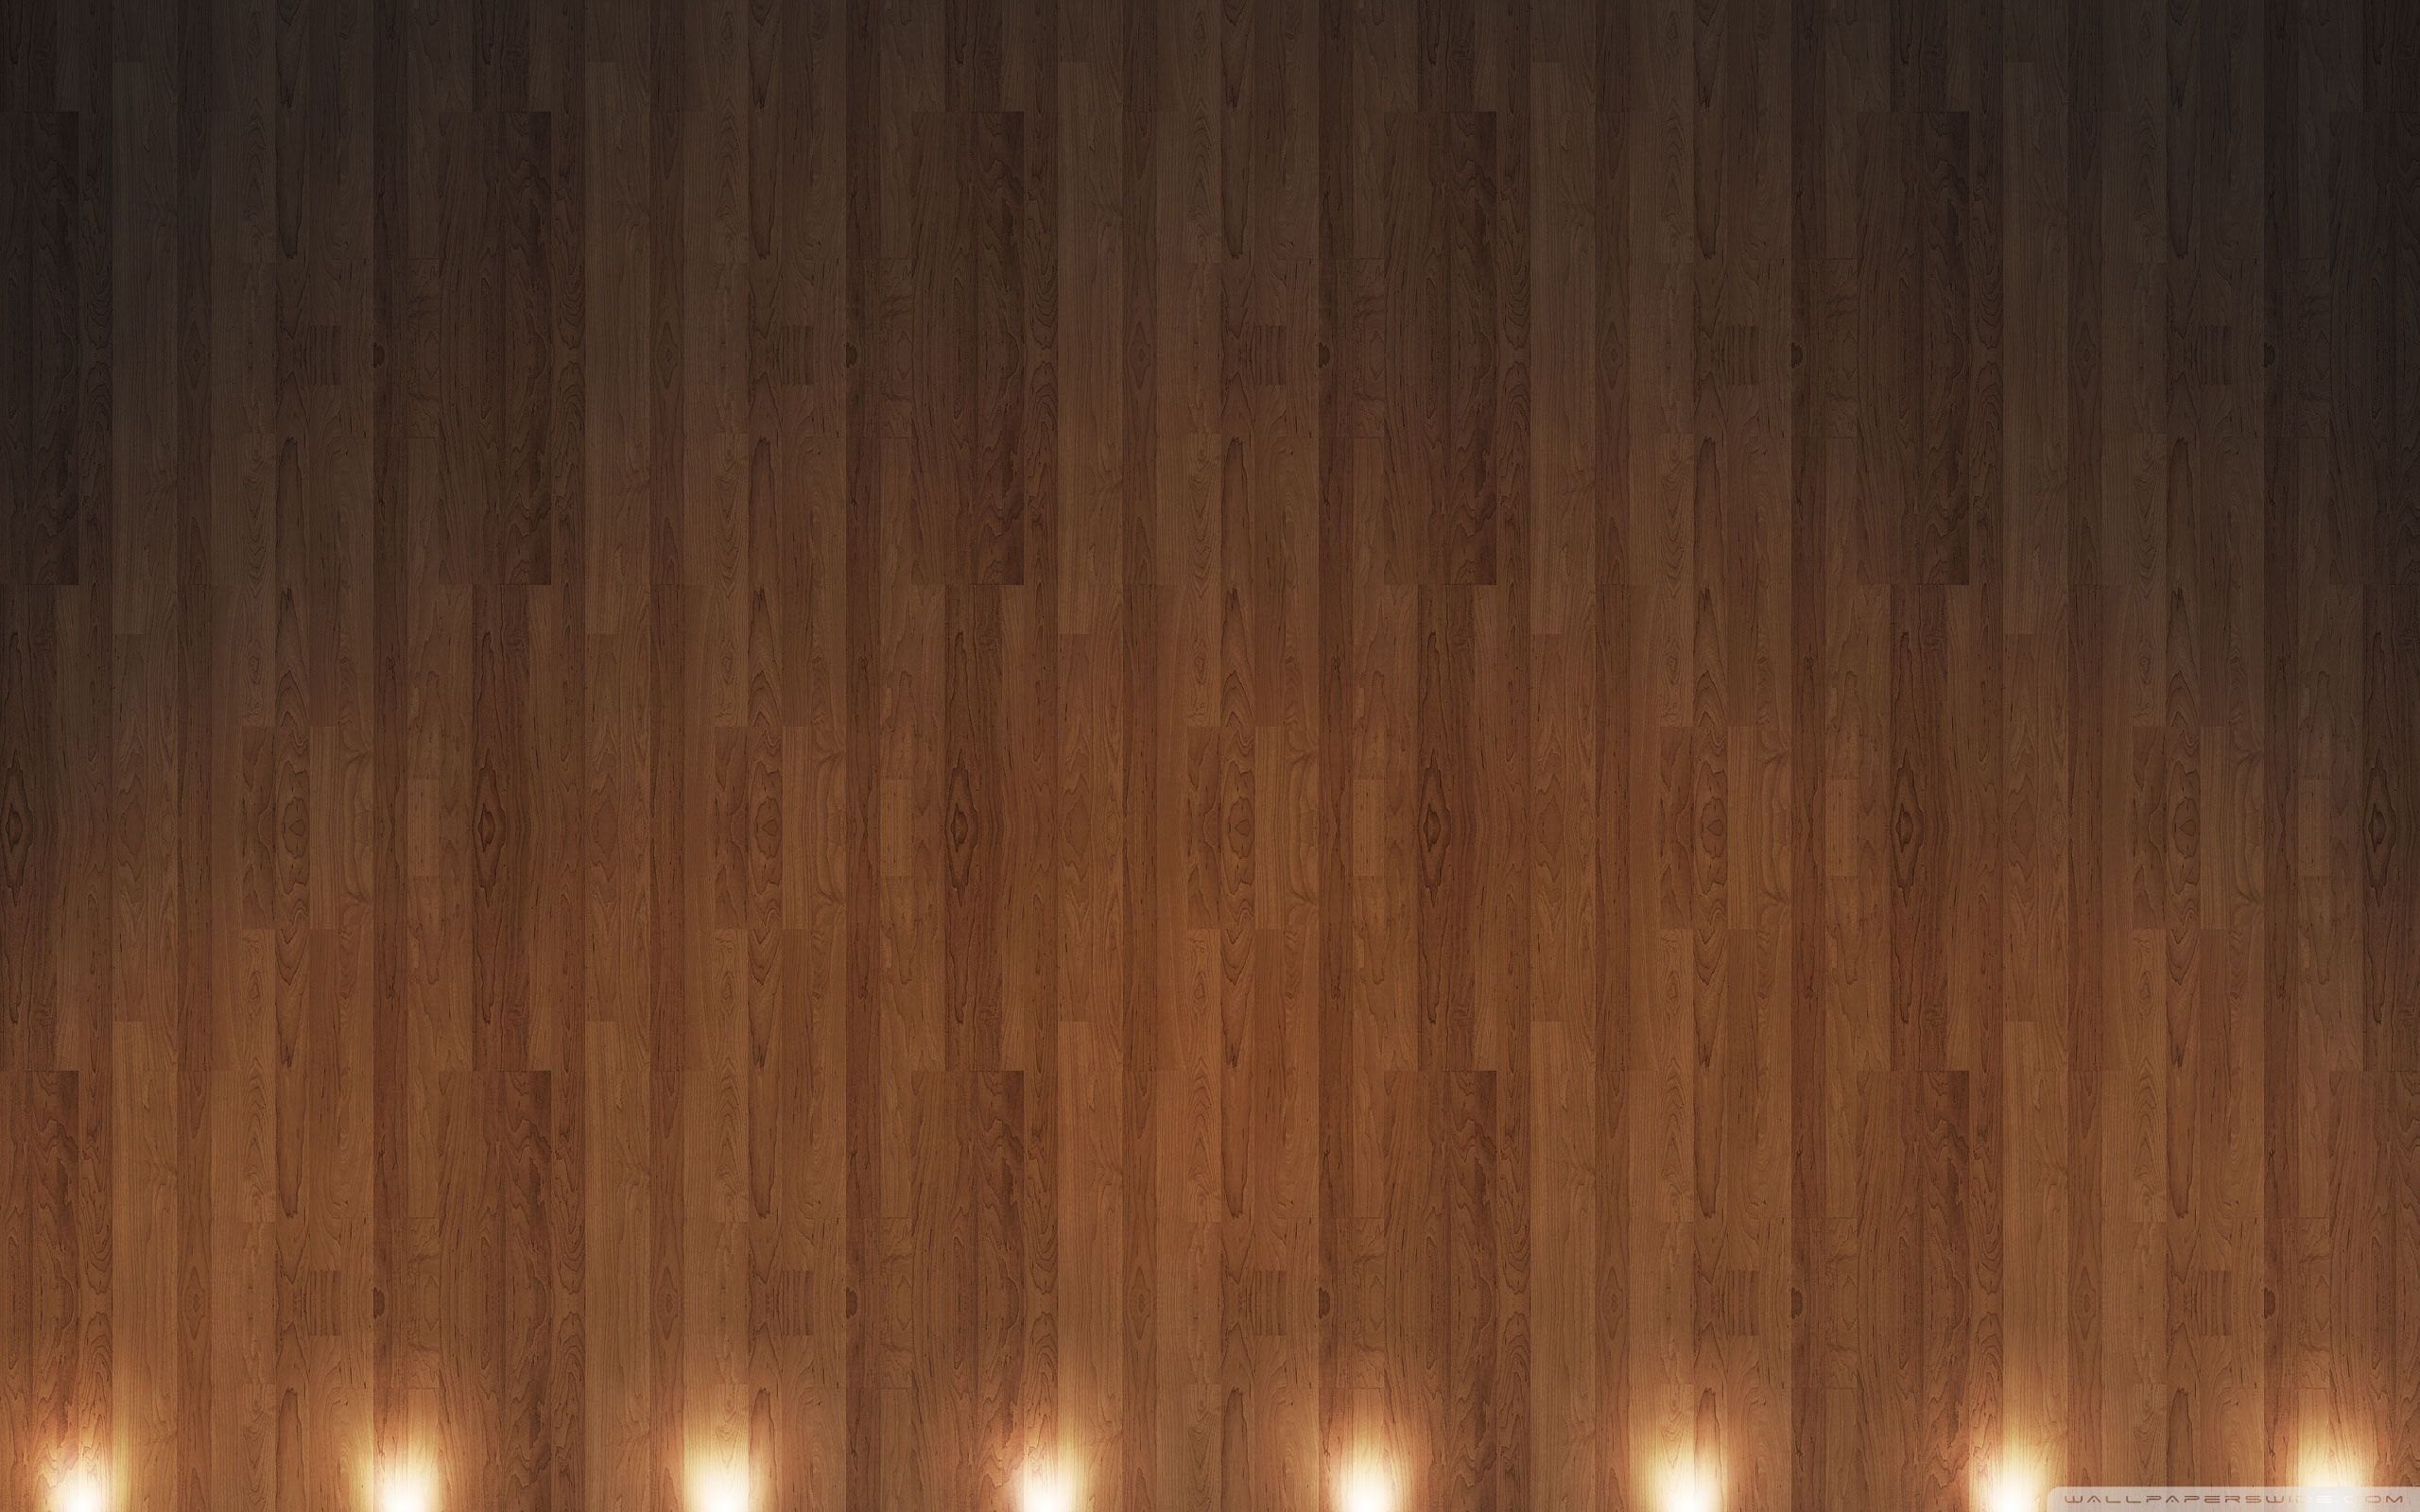 Descargar Illuminated Wood HD Wallpaper - Fondos de pantalla impresos